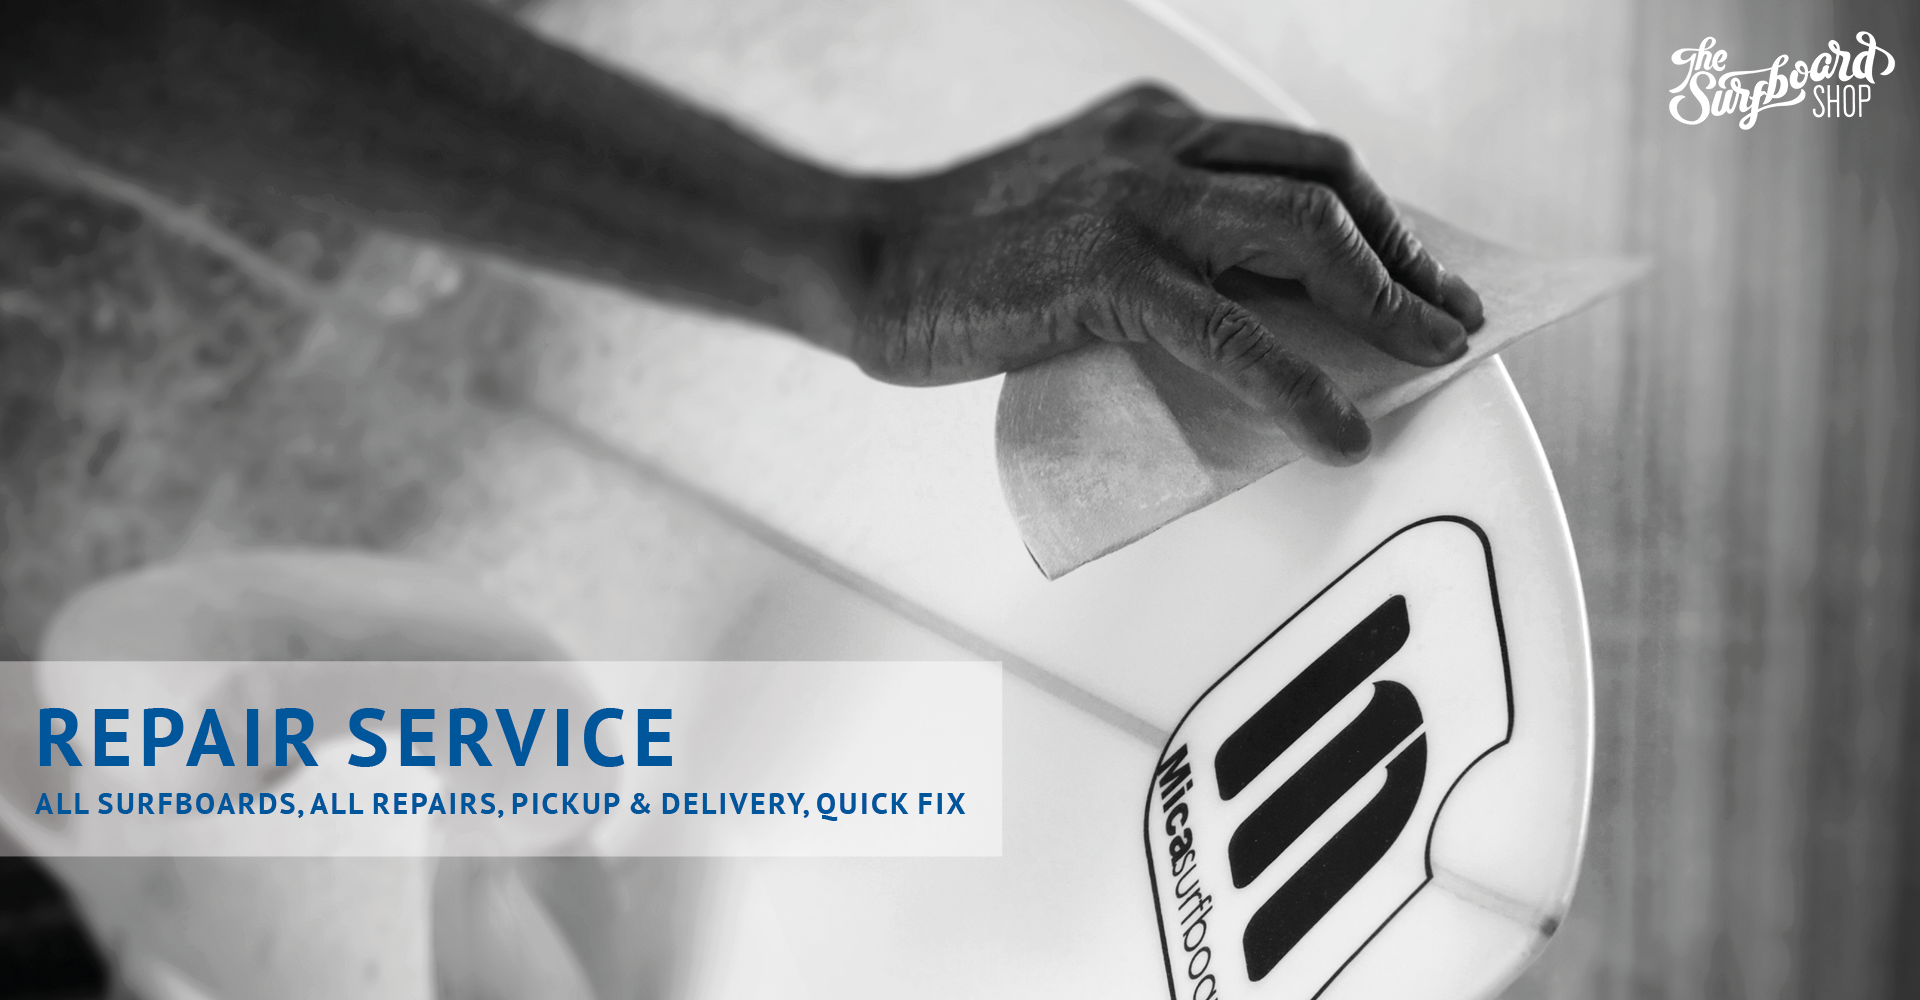 Surfboard Ding Repair Service Ericeira, Lisboa - All surfboards, quick fix, pickup&delivery service